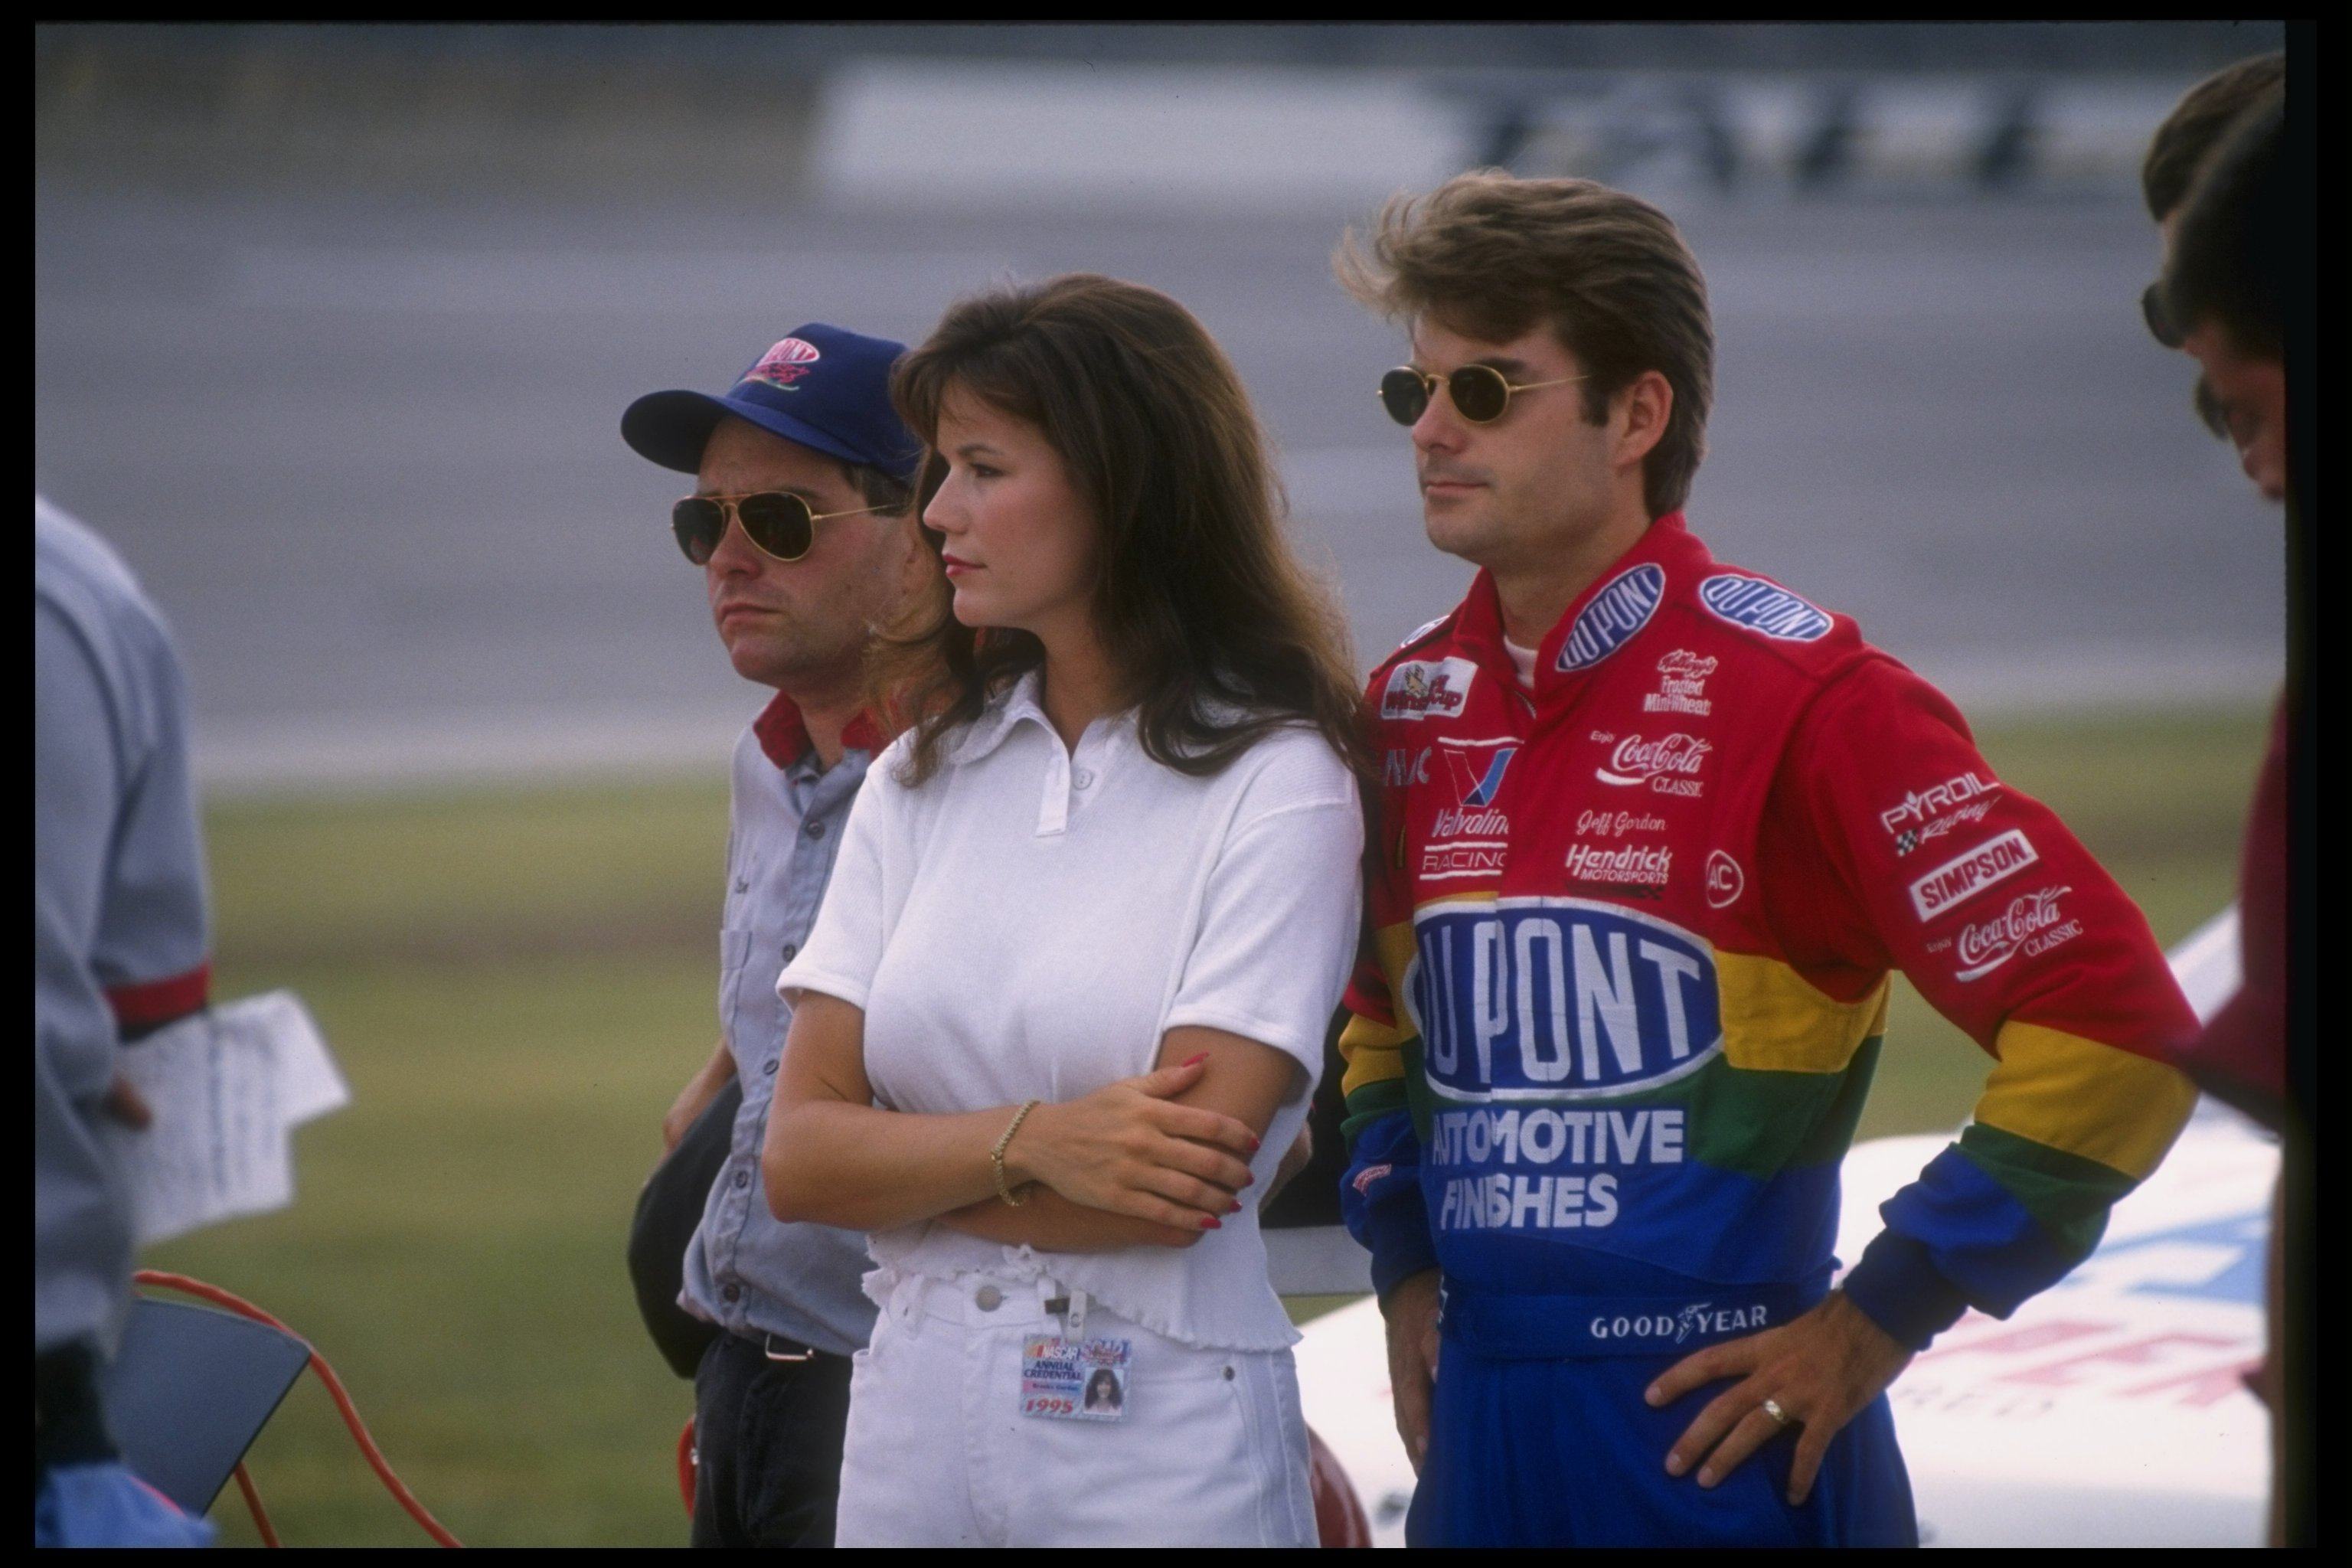 Brooke Sealey Jeff Gordon S Ex Wife 5 Fast Facts Heavy Com